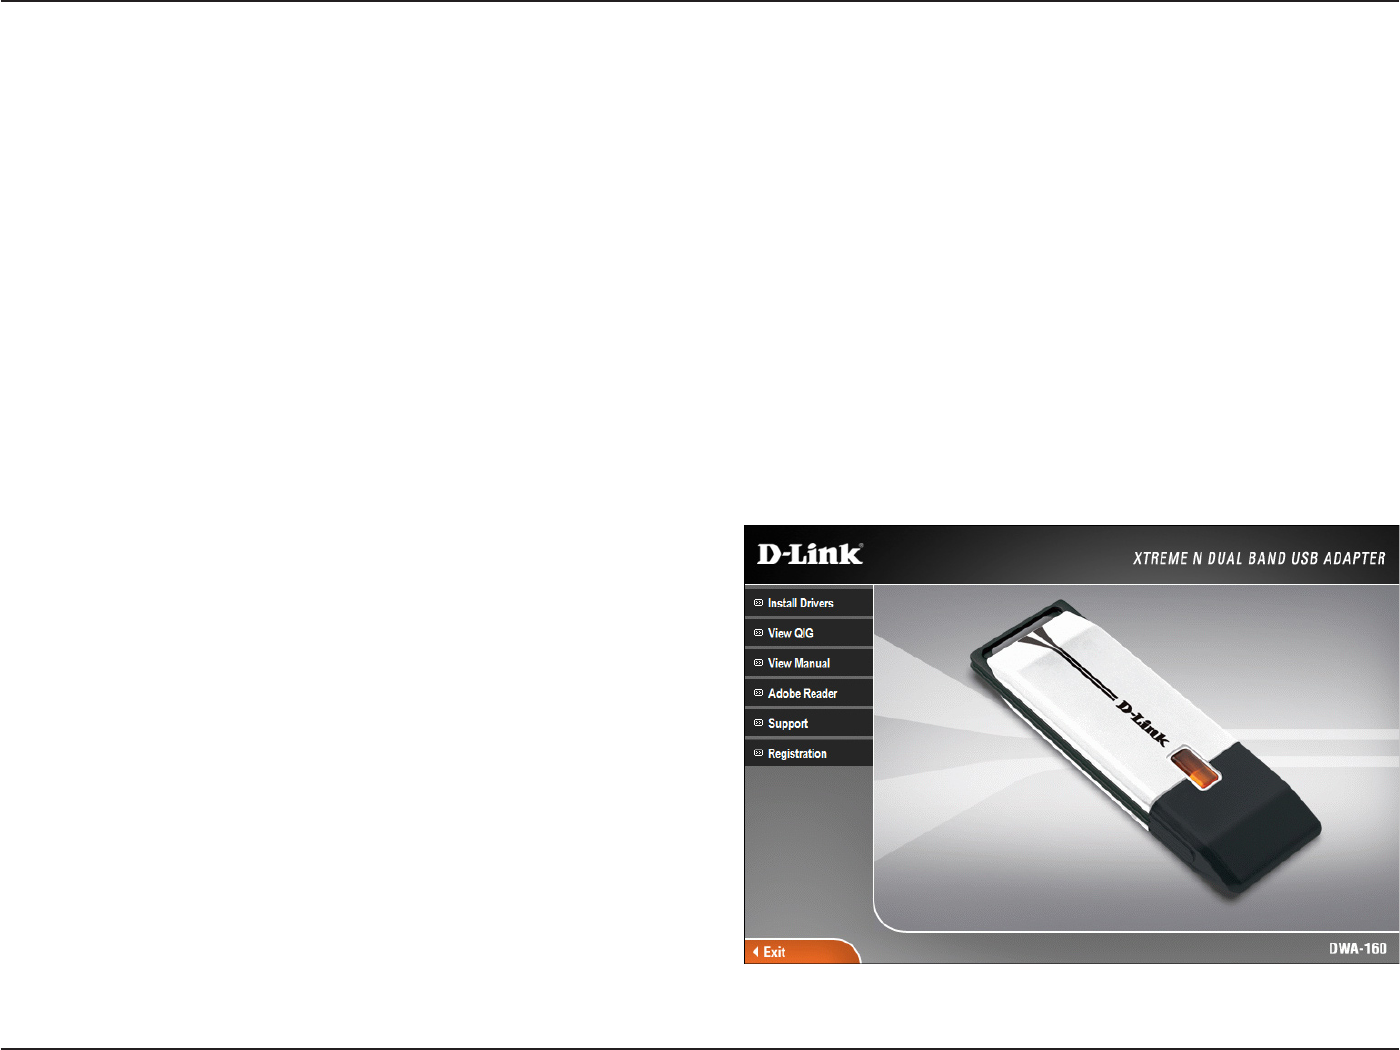 d-link dwa-160 a2 driver windows 10